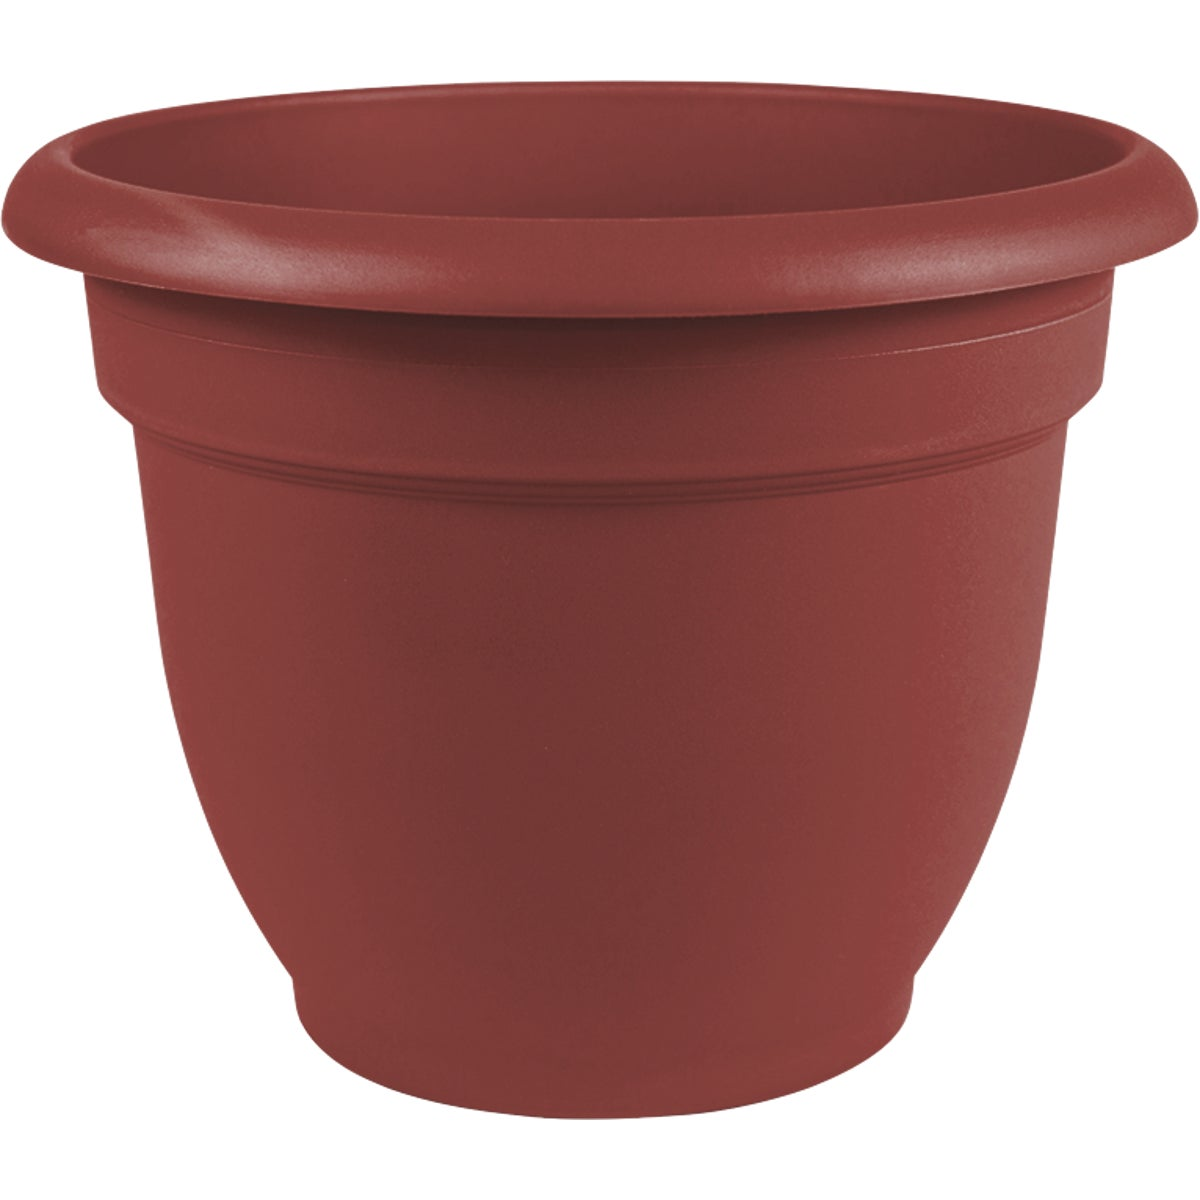 "12"" ORANGE ARIANA POT - 465122-1001 by Fiskars Brands Inc"